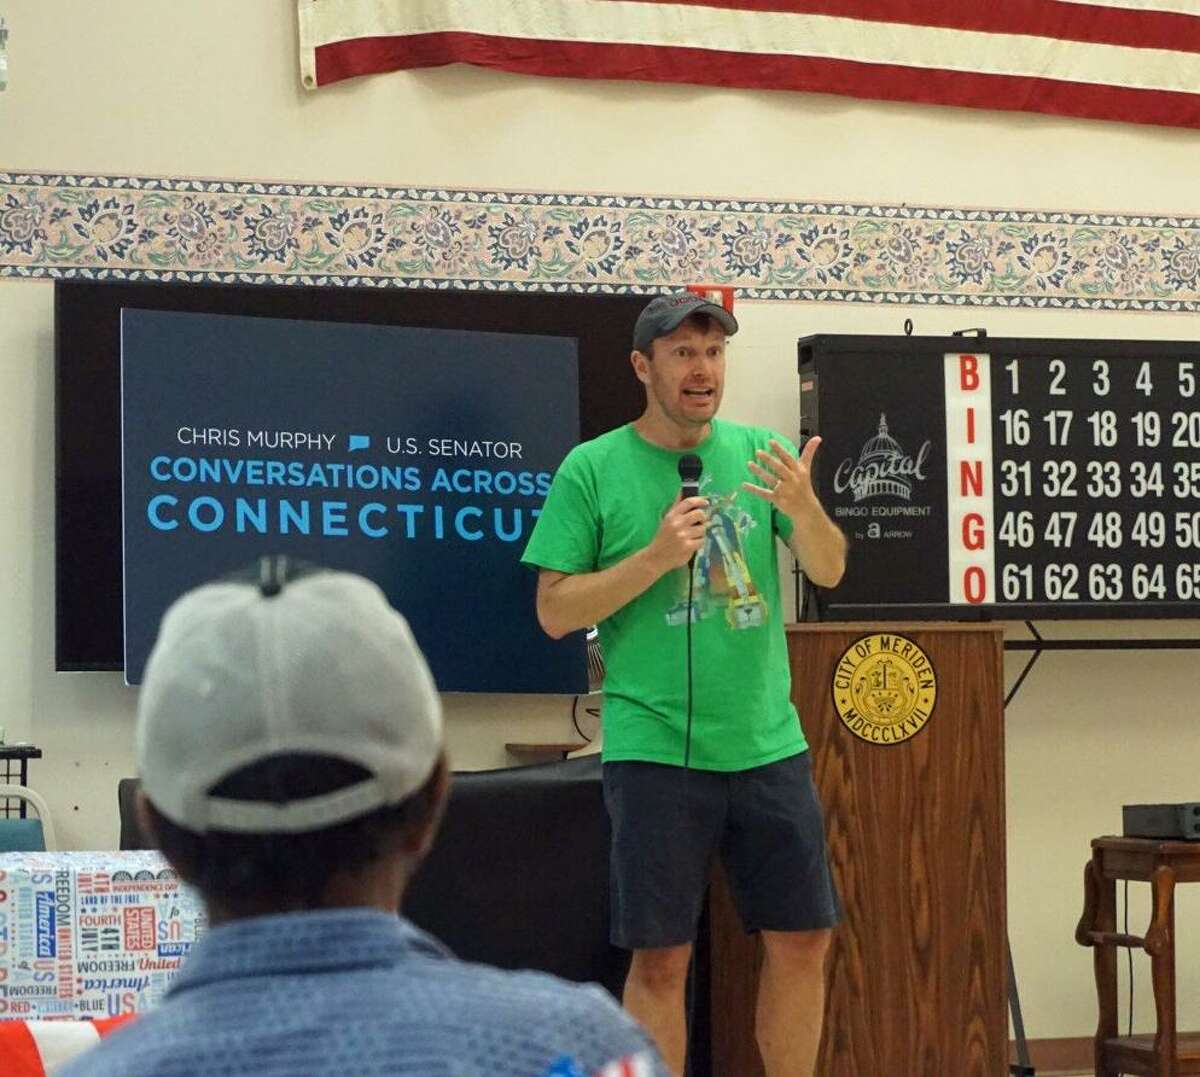 U.S. Sen. Chris Murphy held a town hall in Meriden, Conn. on Saturday July 7, 2018 during his third annual walk across the state.